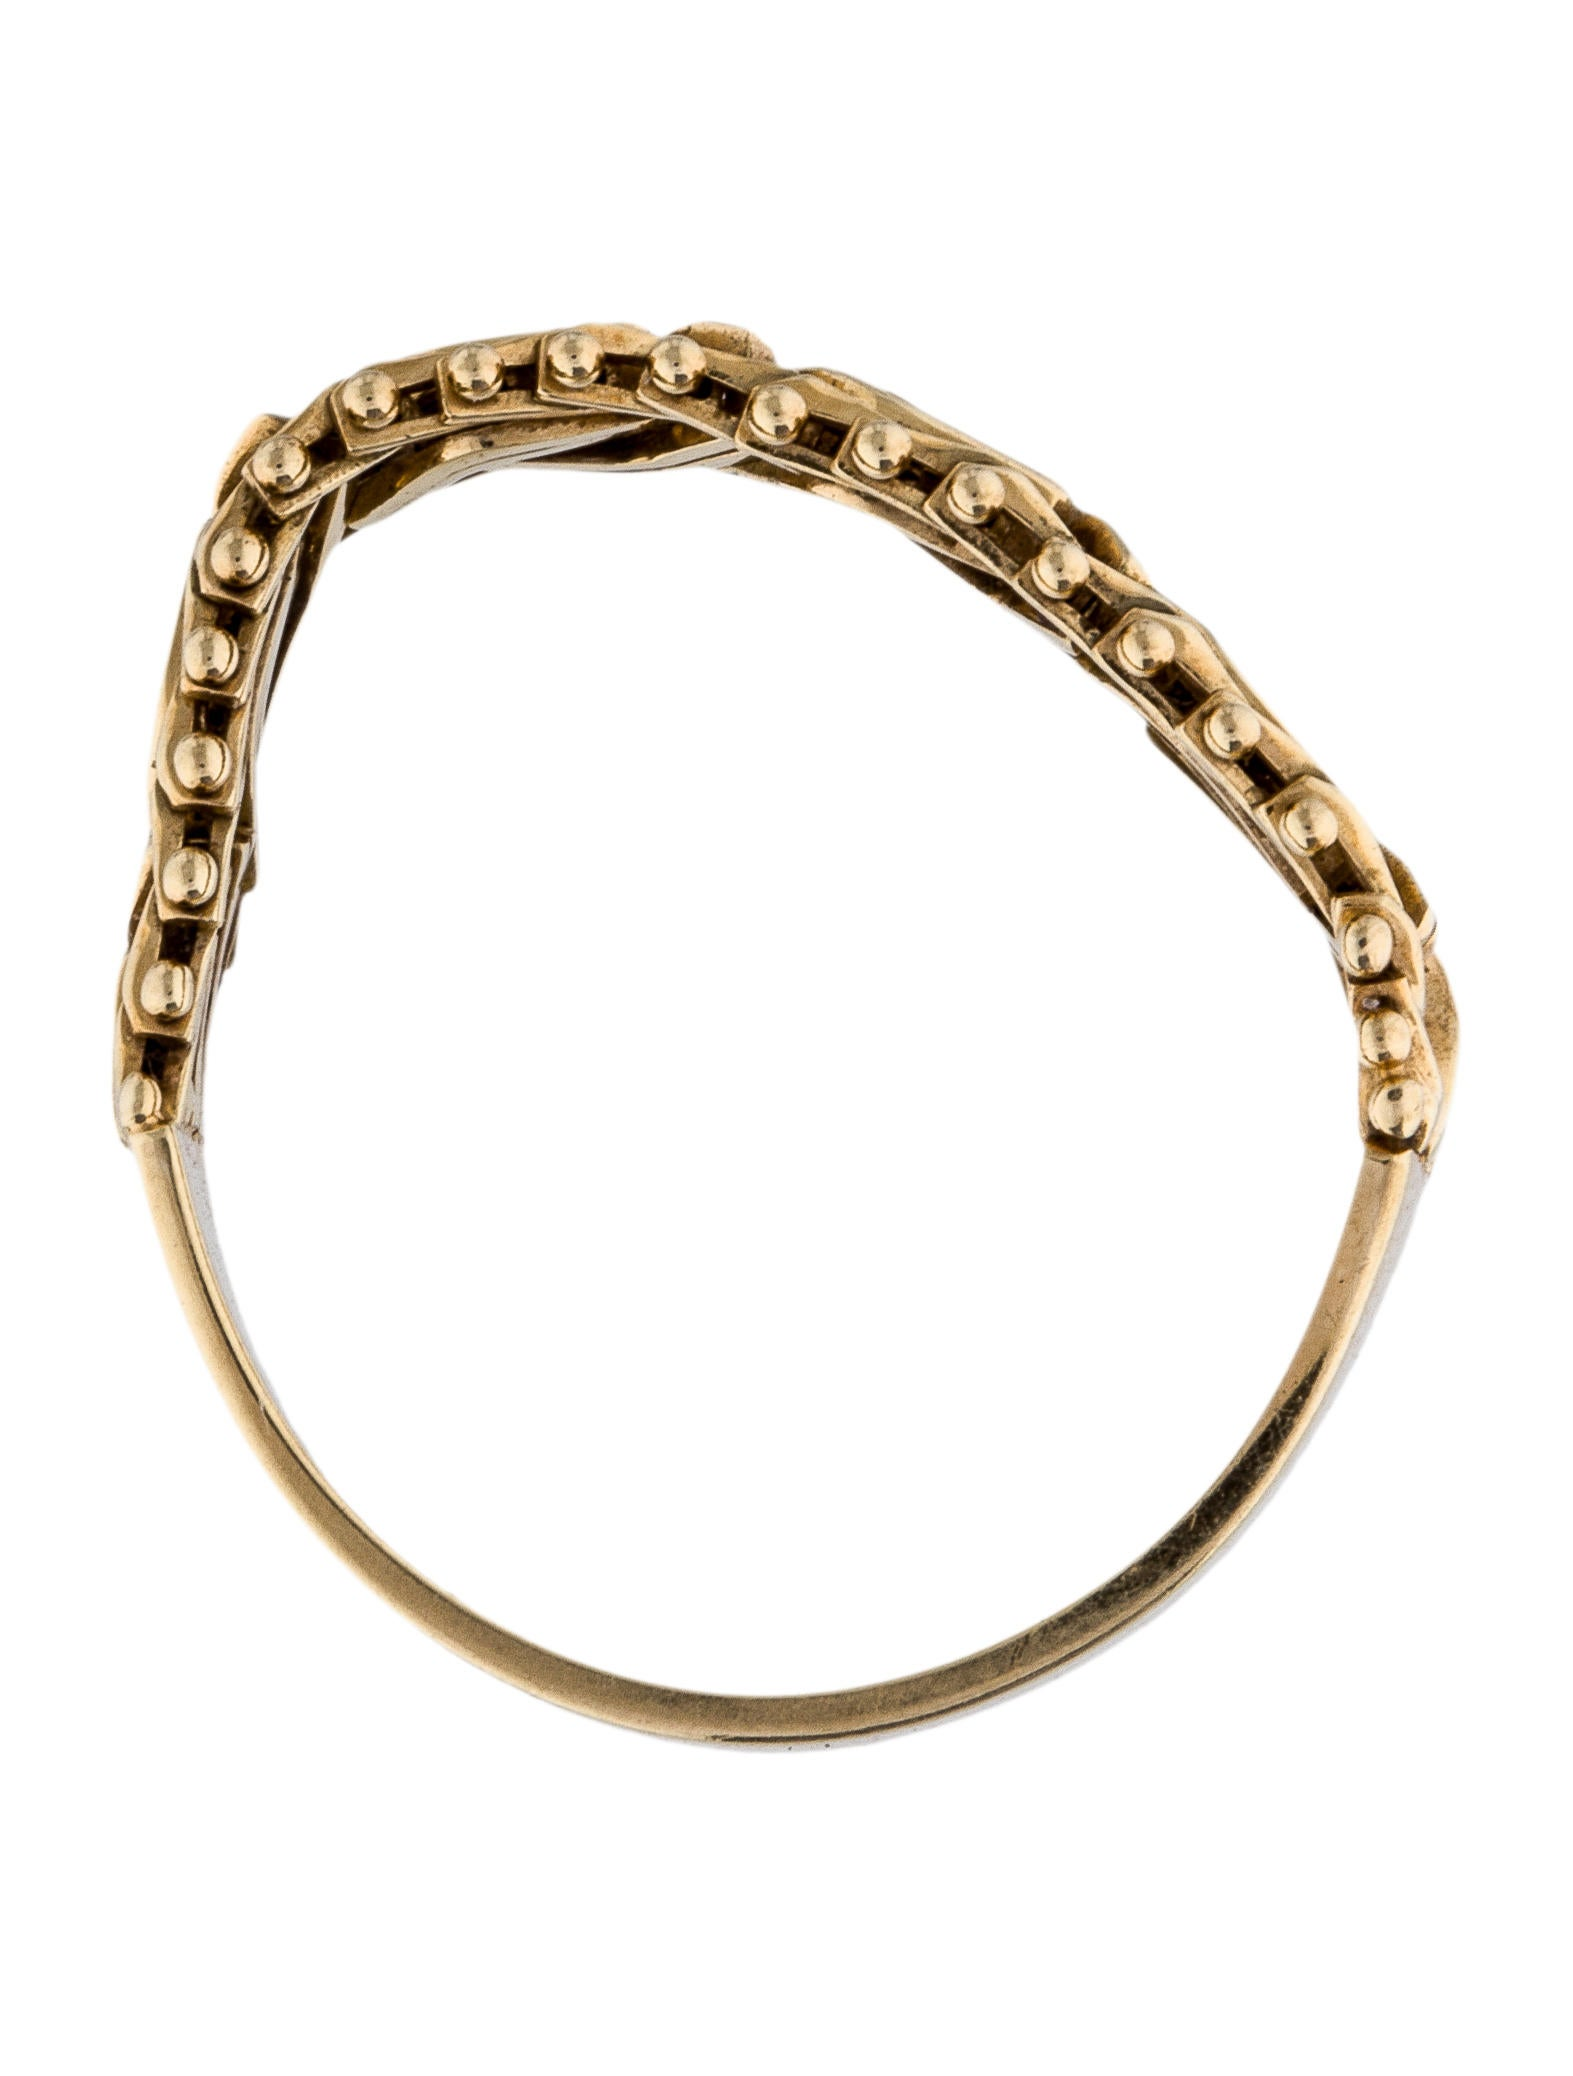 14k Mesh Woven Chain Band Rings Rring35598 The Realreal